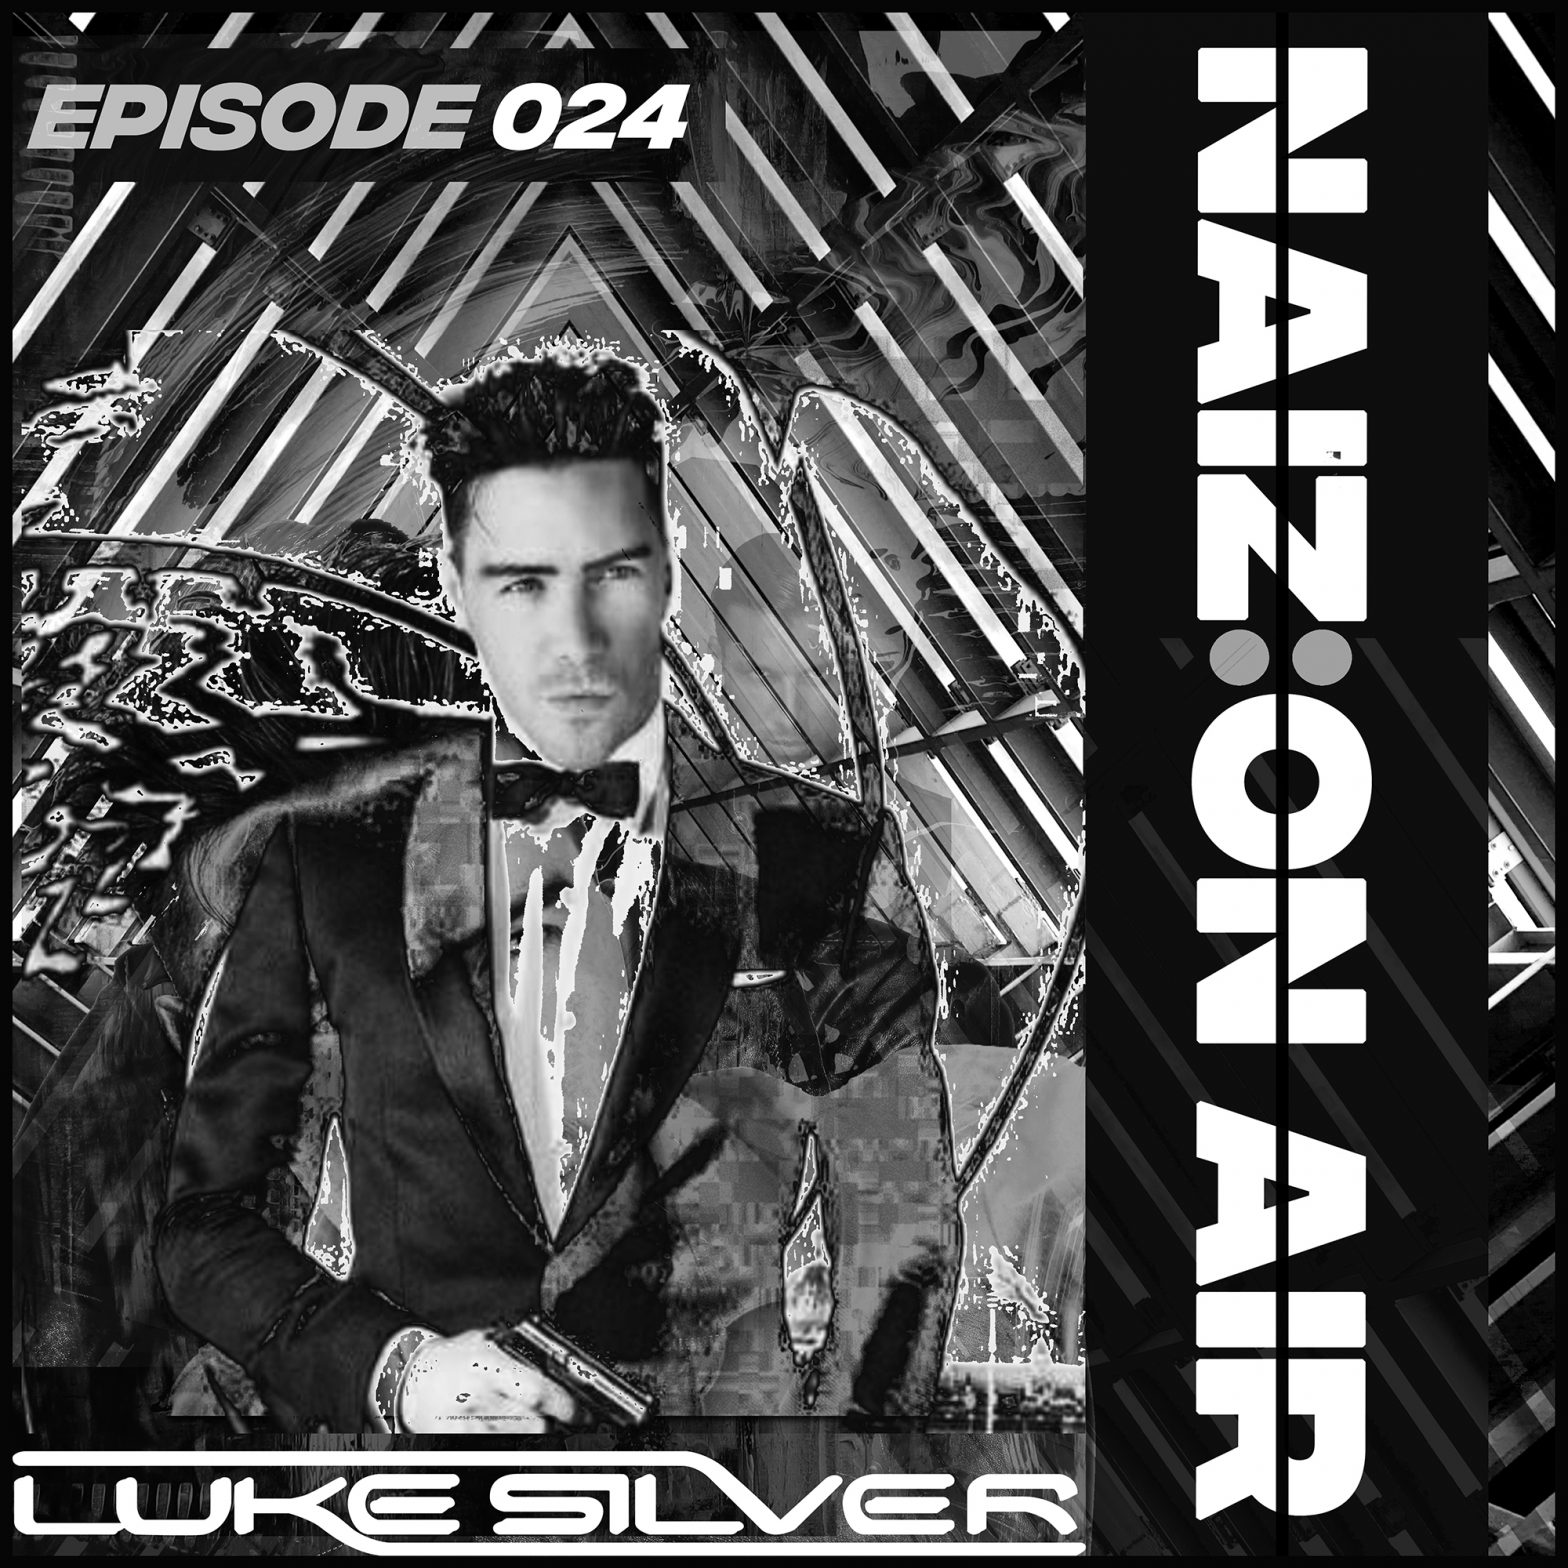 naizon_naizon_air_024_with_luke_silver